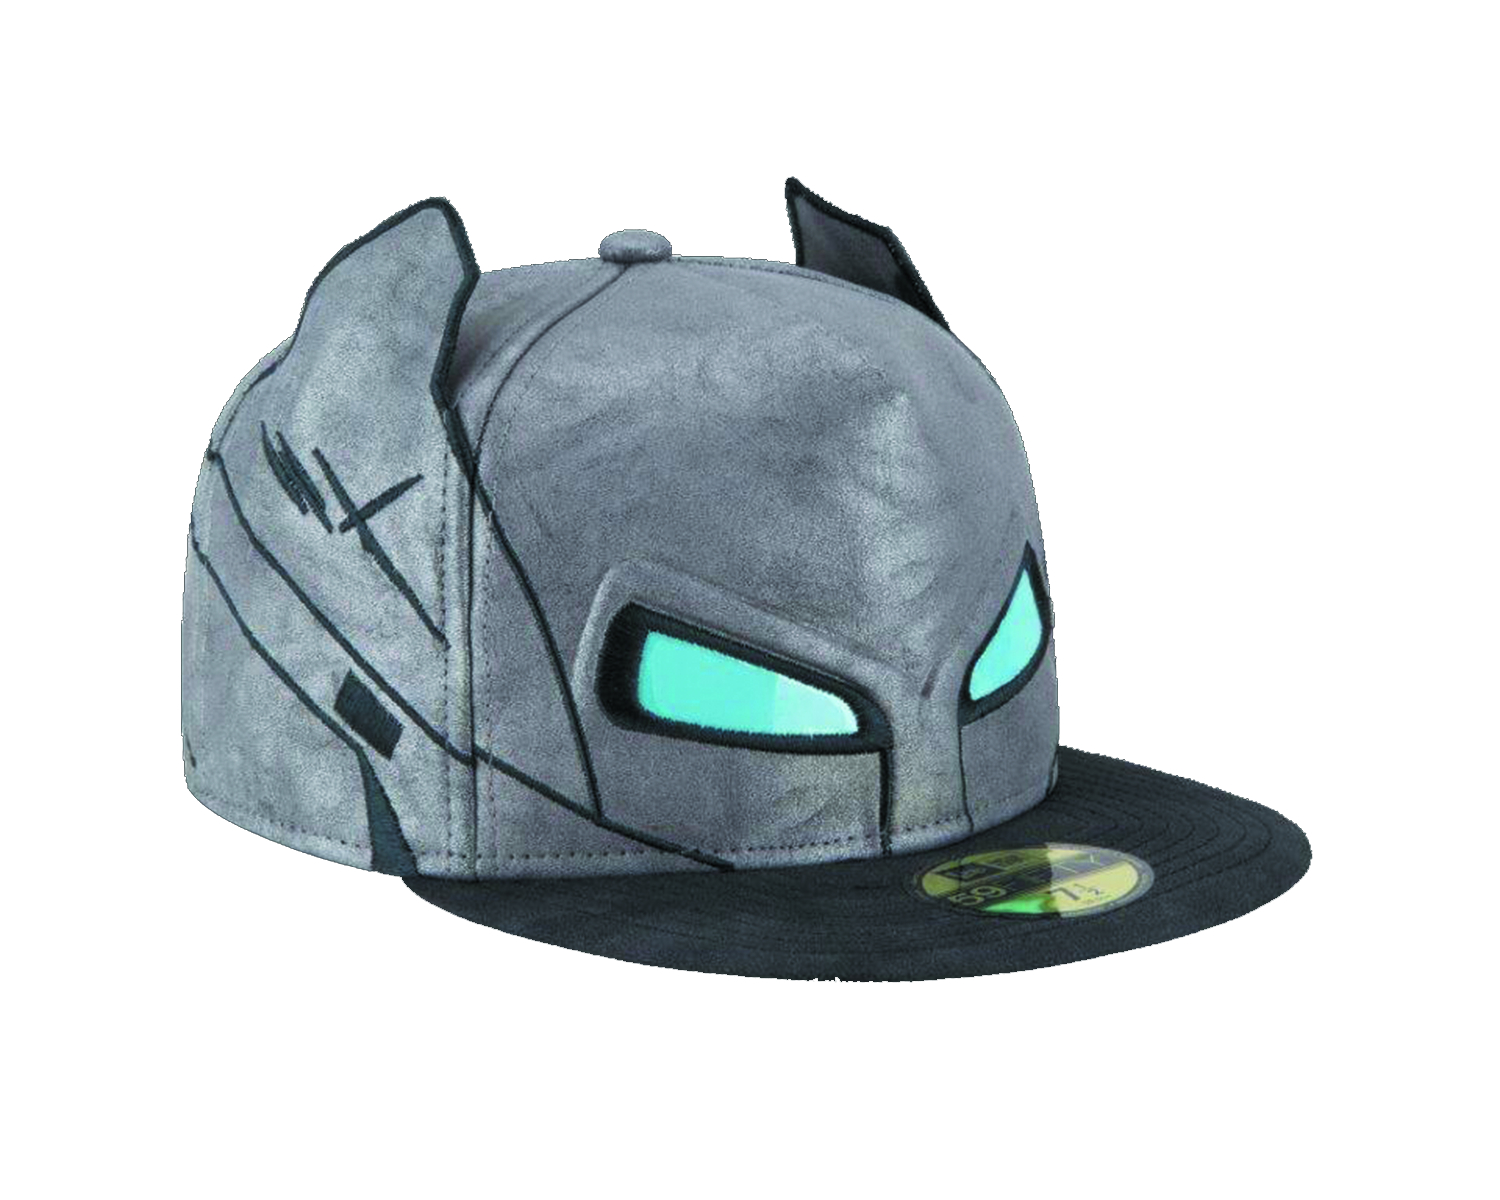 BATMAN V SUPERMAN ARMOR BATMAN HELMET FITTED CAP SZ 7 1/2